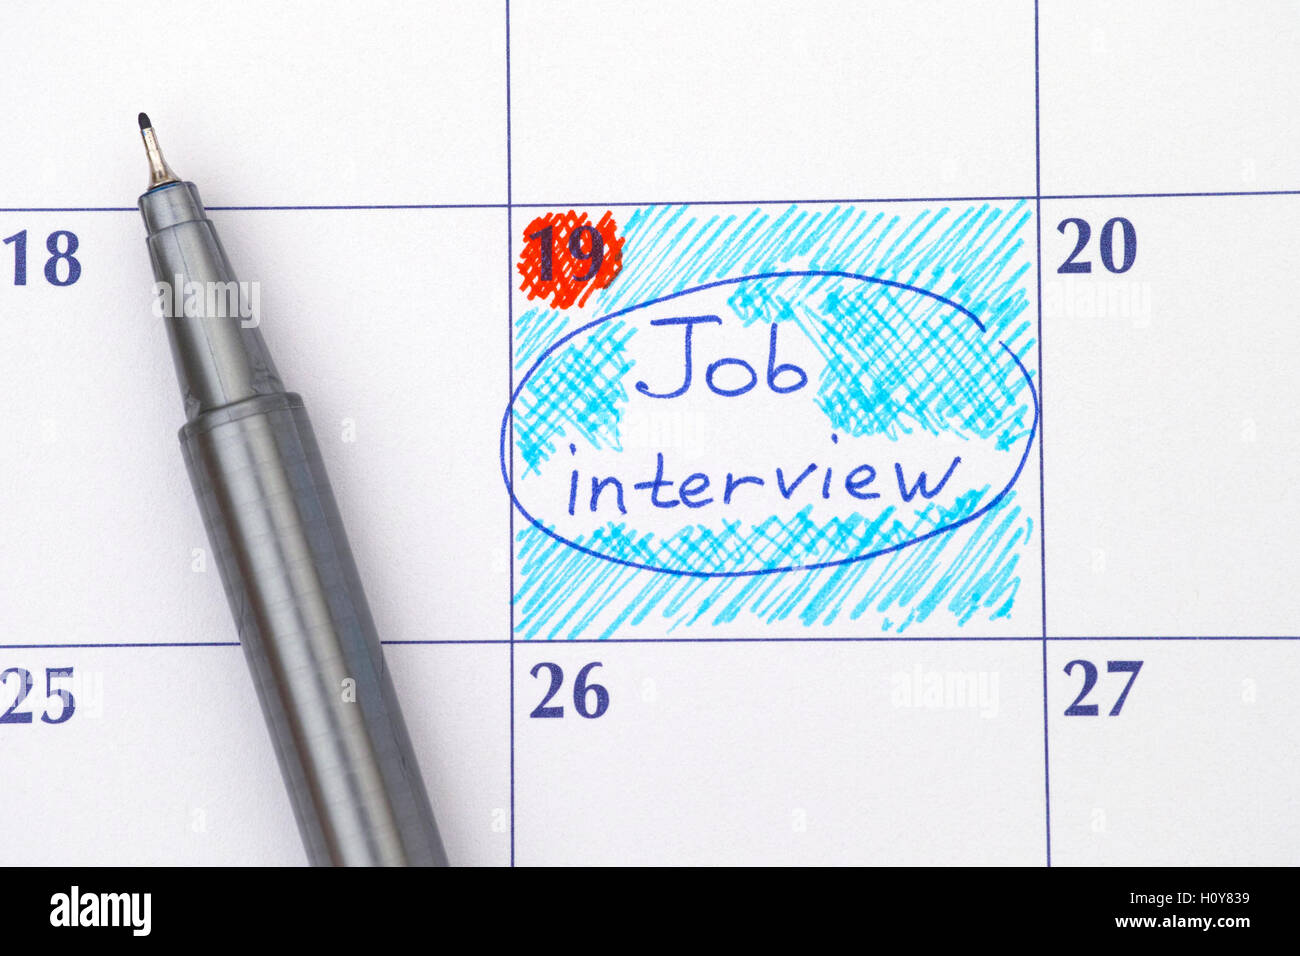 Reminder Job Interview in calendar with blue pen. - Stock Image